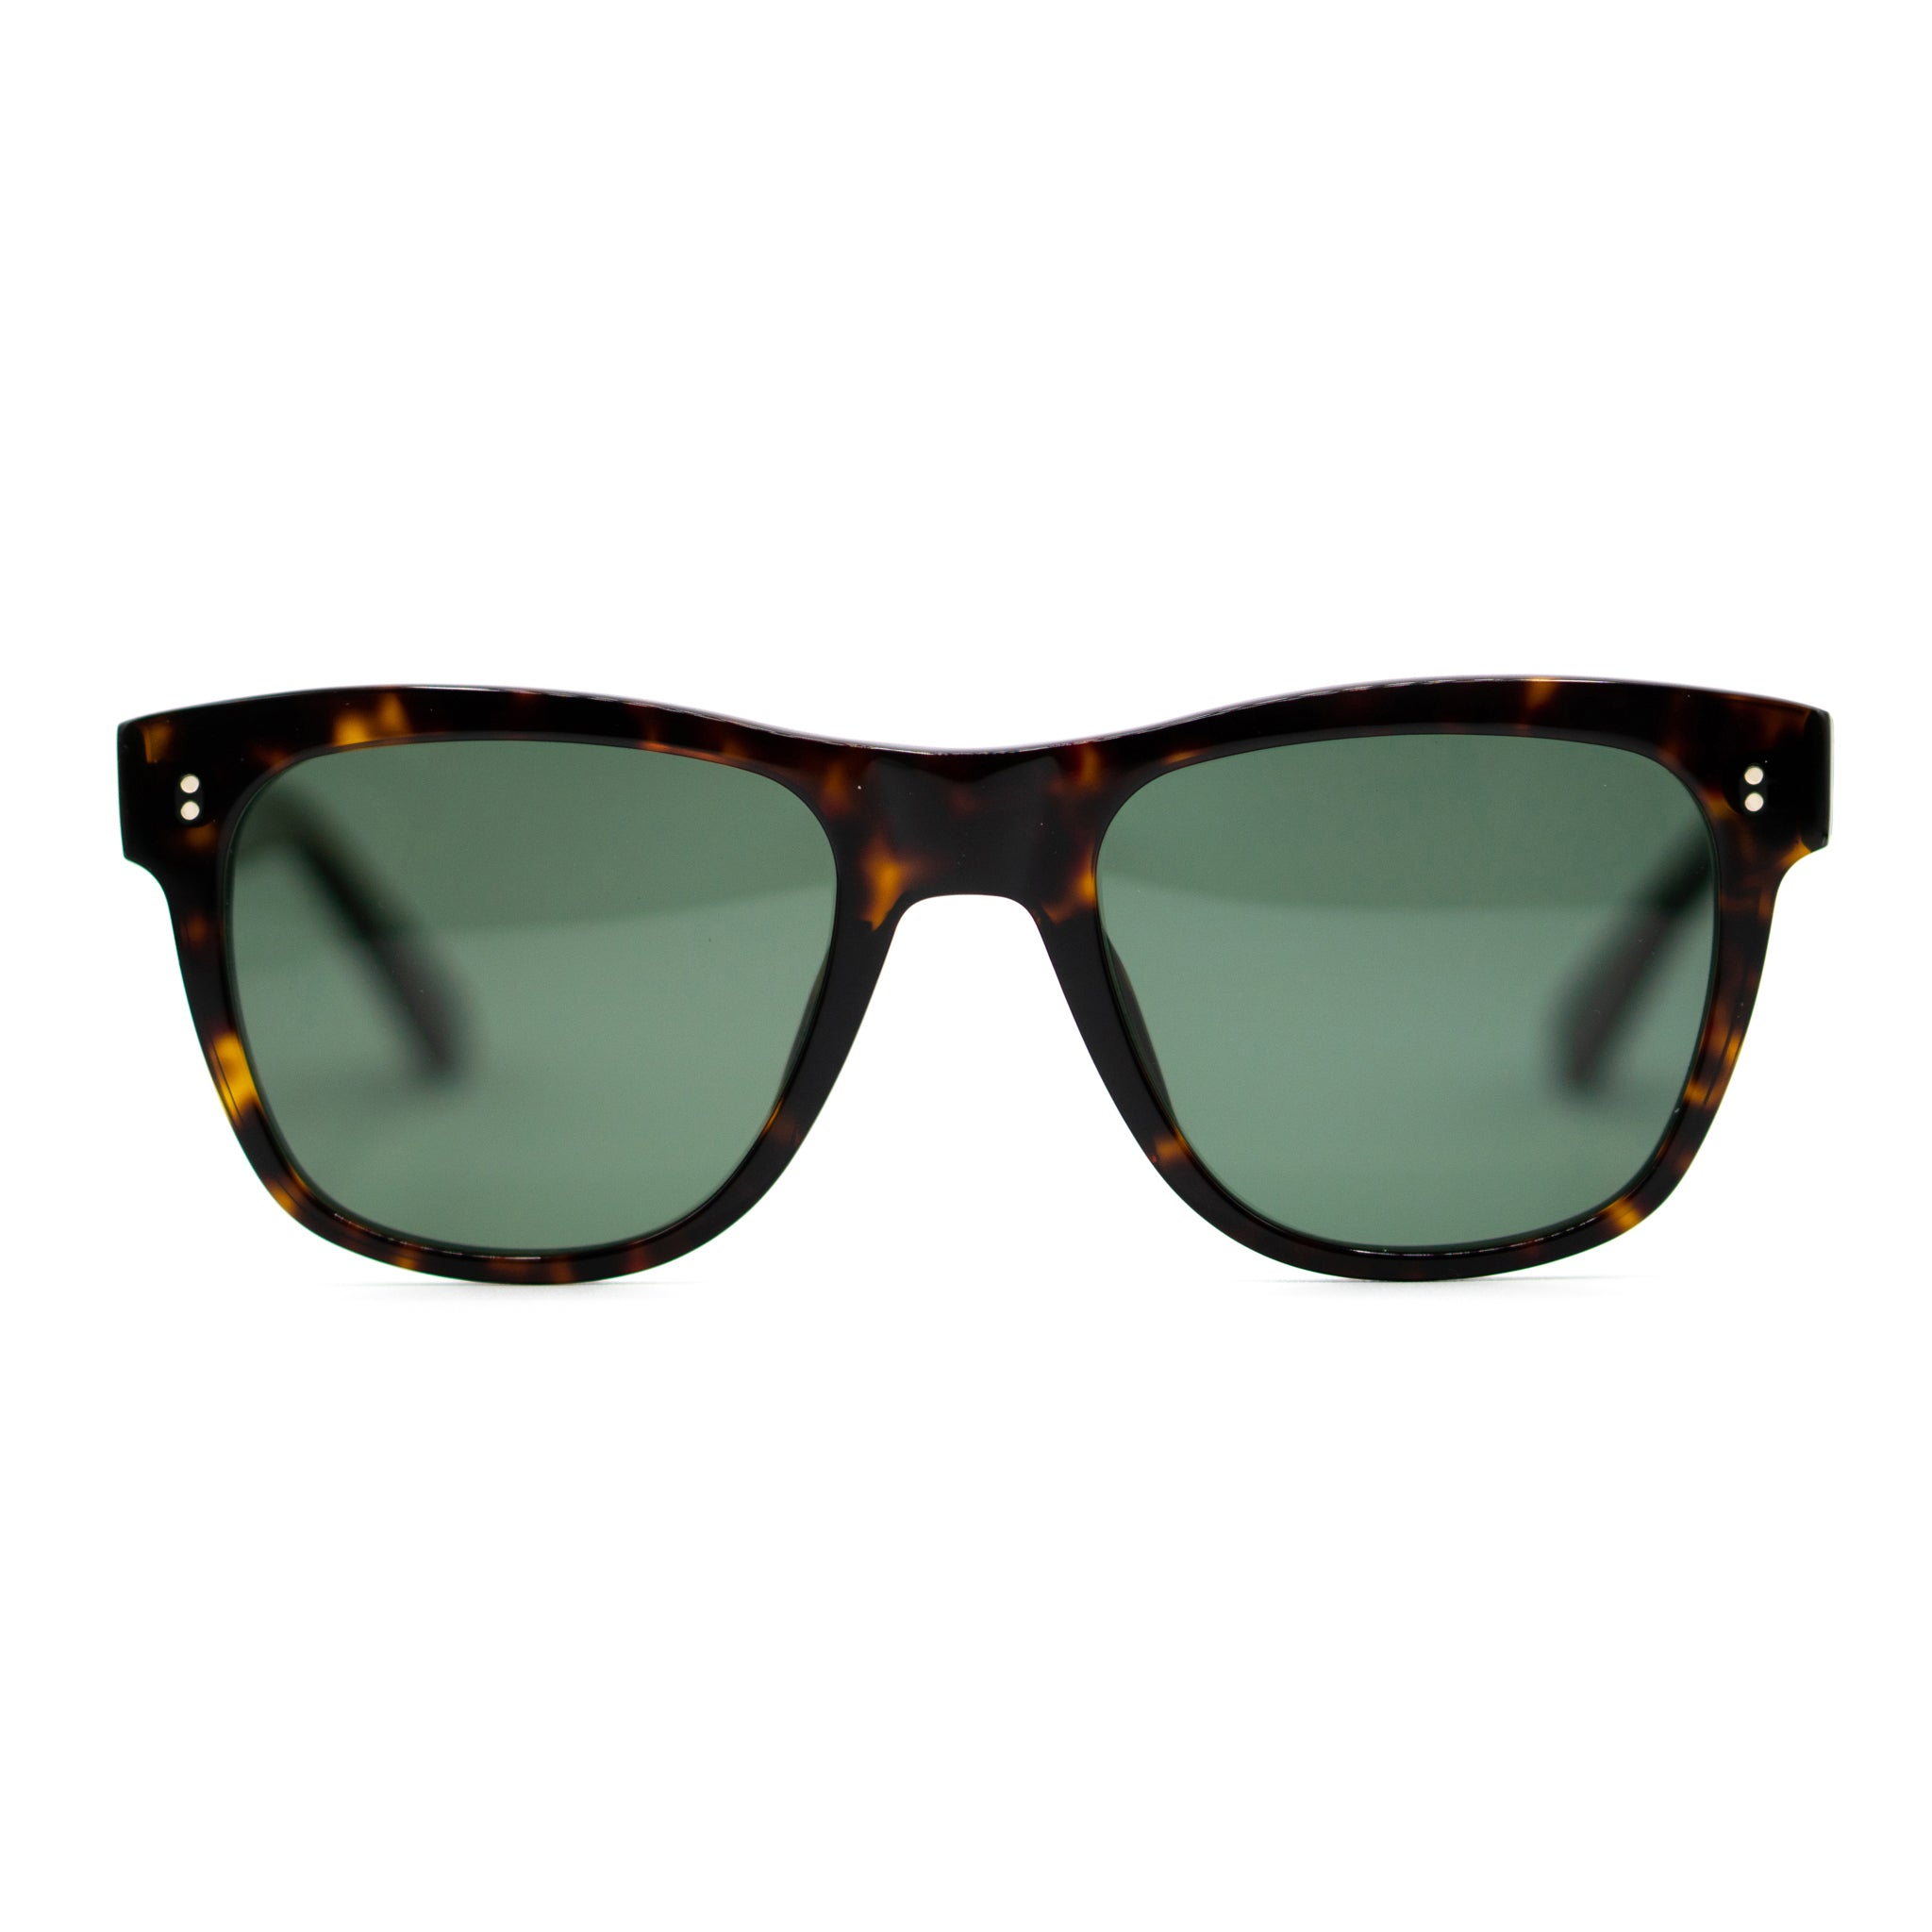 Pine Ridge in Dark Tortoise